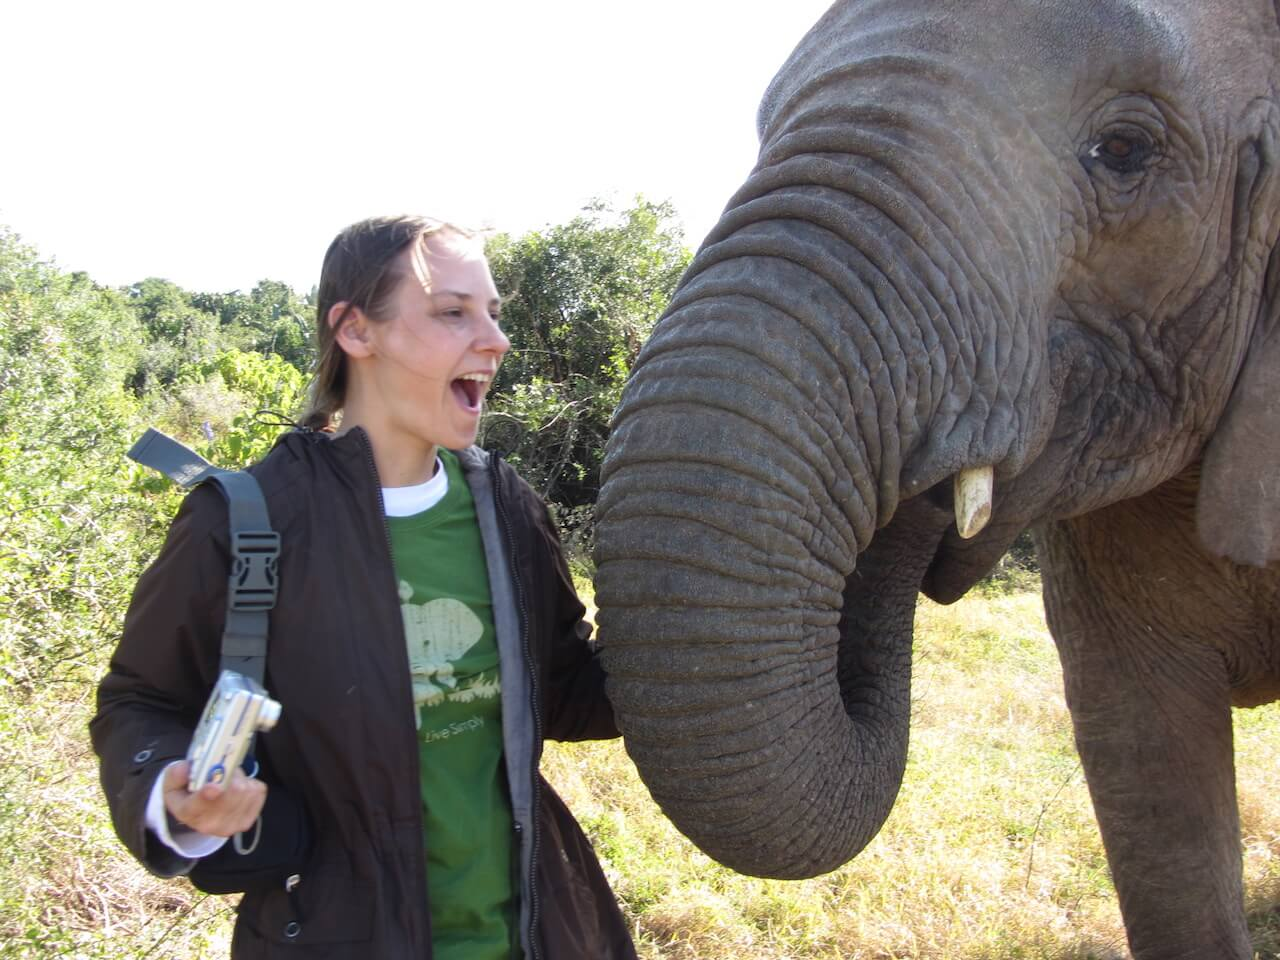 Volunteer with elephants in Thailand: how to do it responsibly